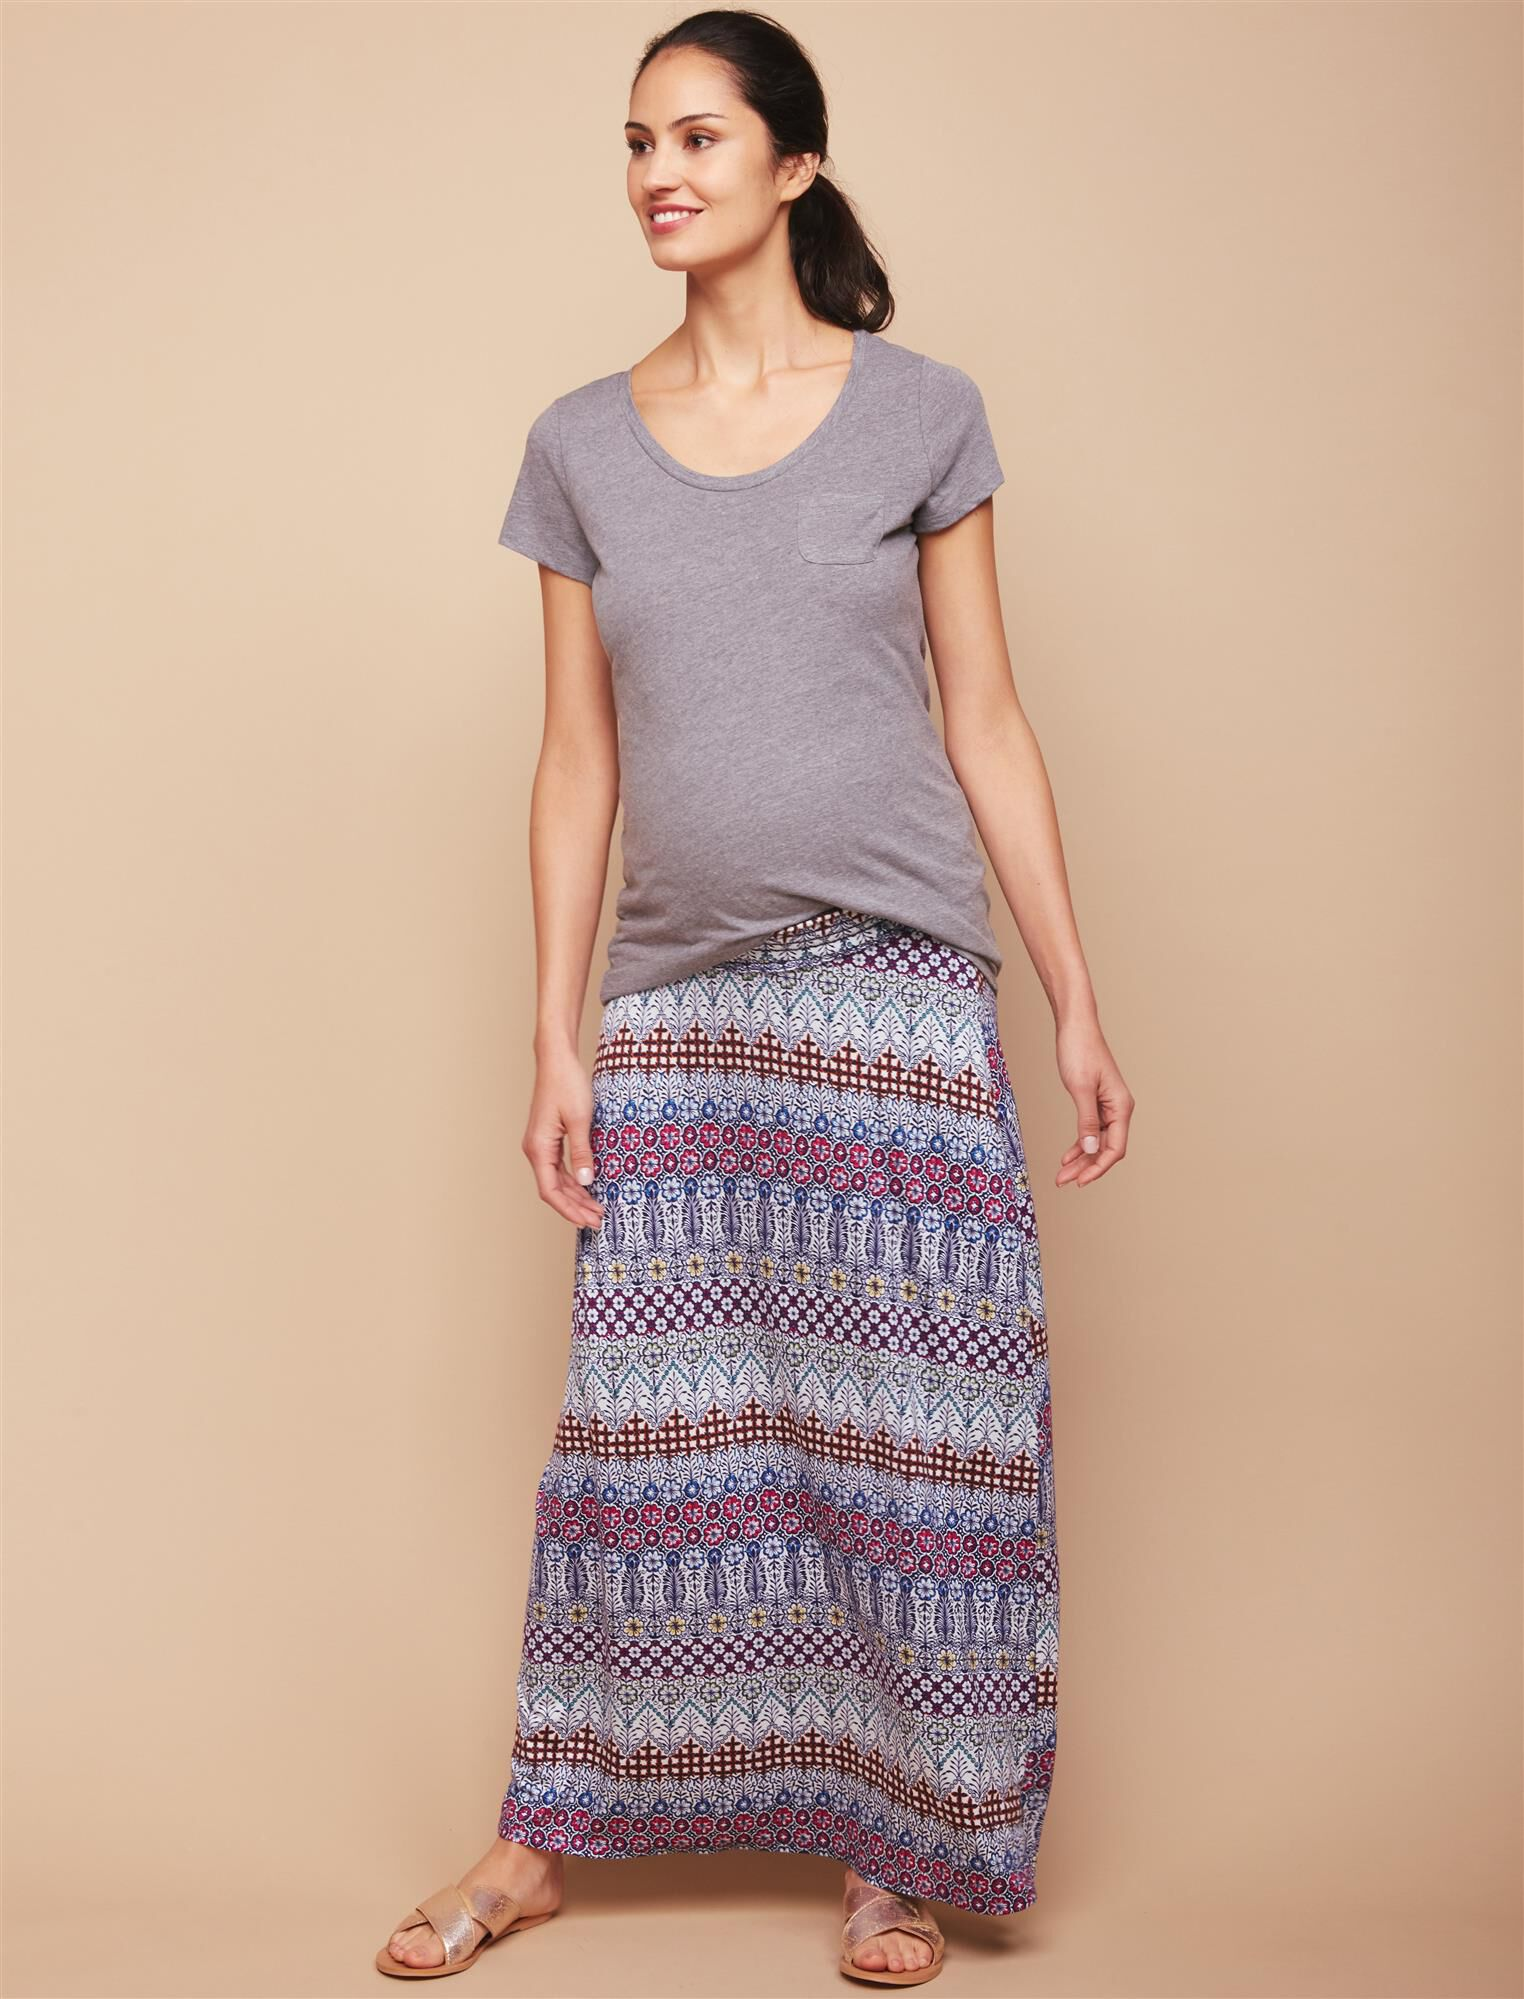 Under Belly Smock Waist Maternity Maxi Skirt- Tribal Print